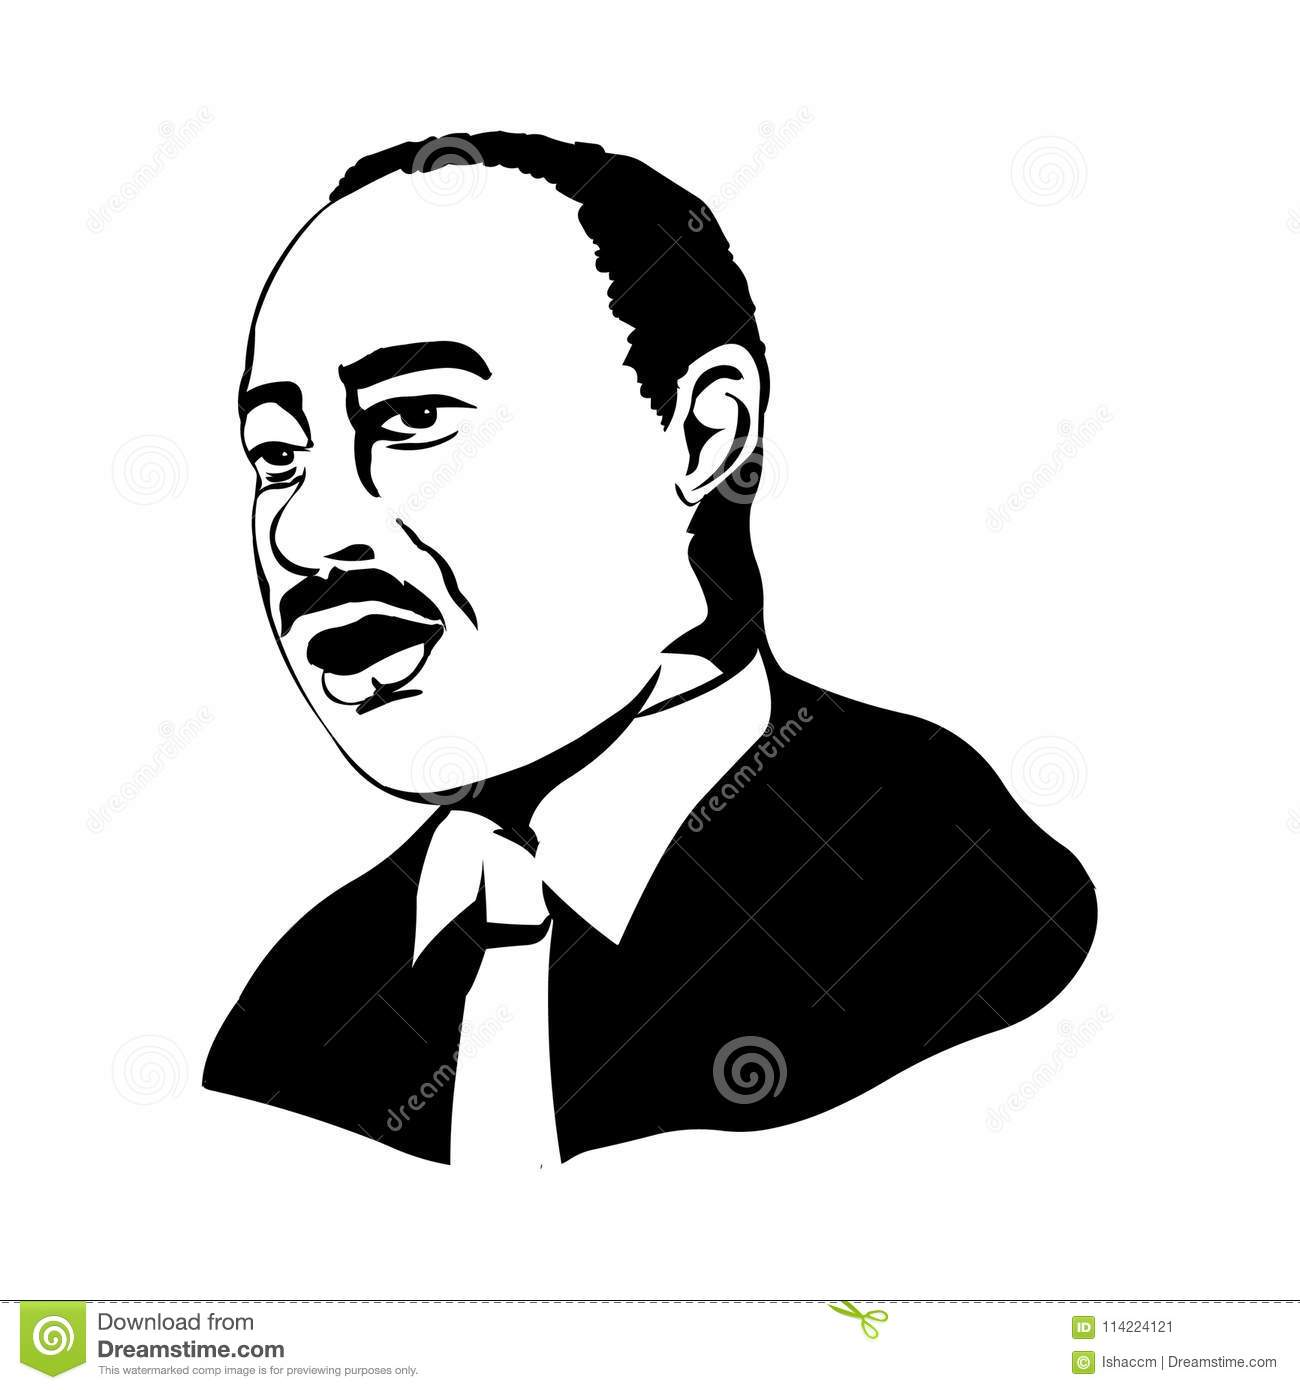 Martin Luther King Jr Retrato del vector de Martin Luther King Jr